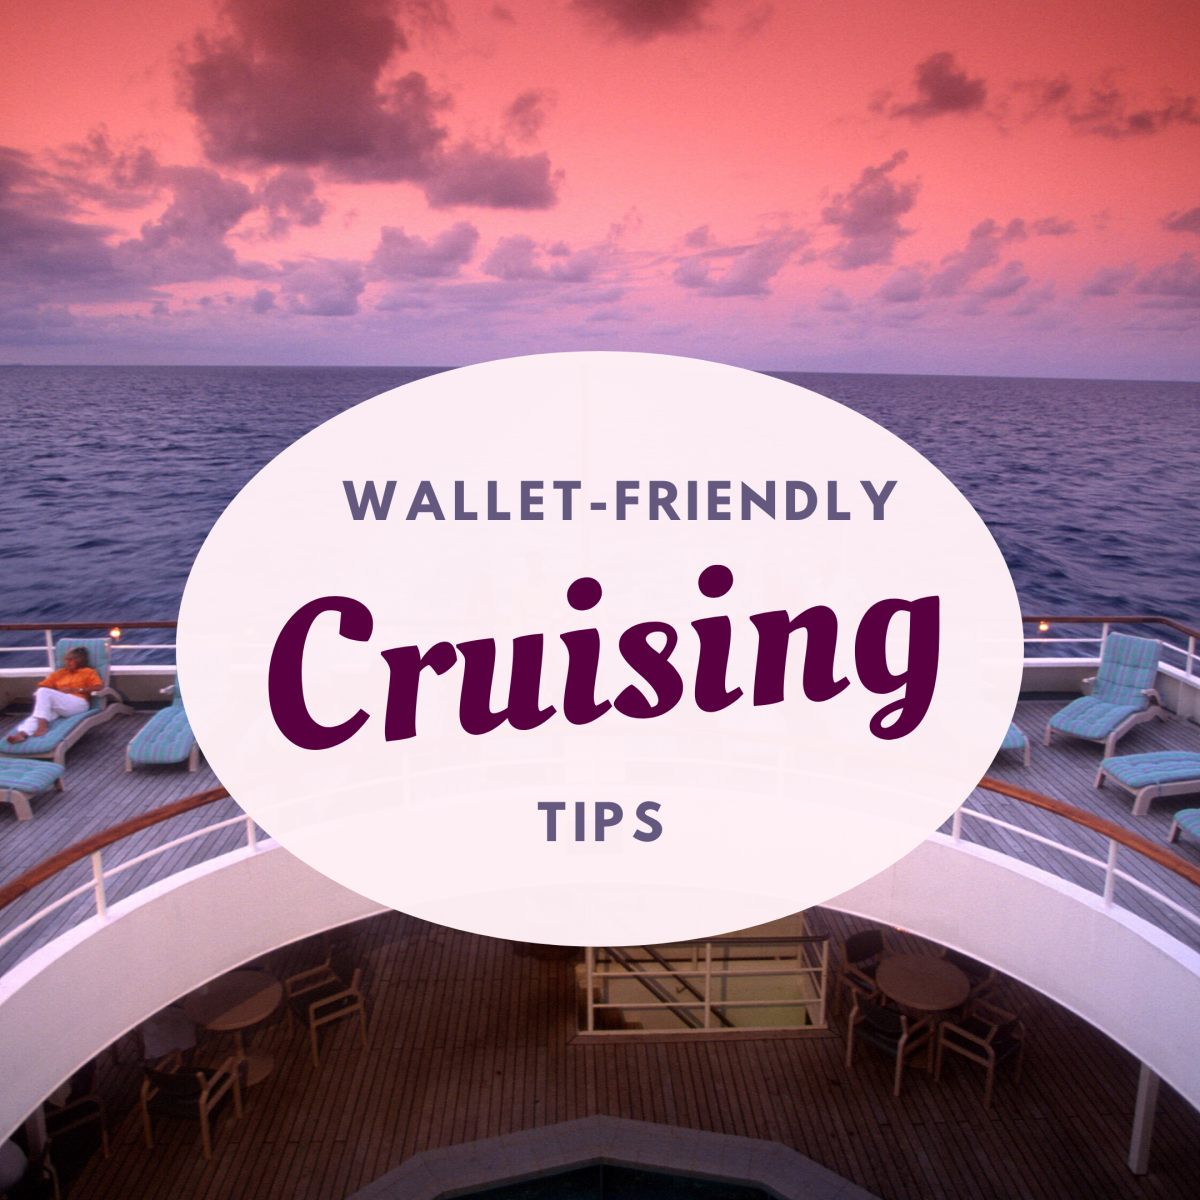 7 Easy Tips for Cruising on a Budget